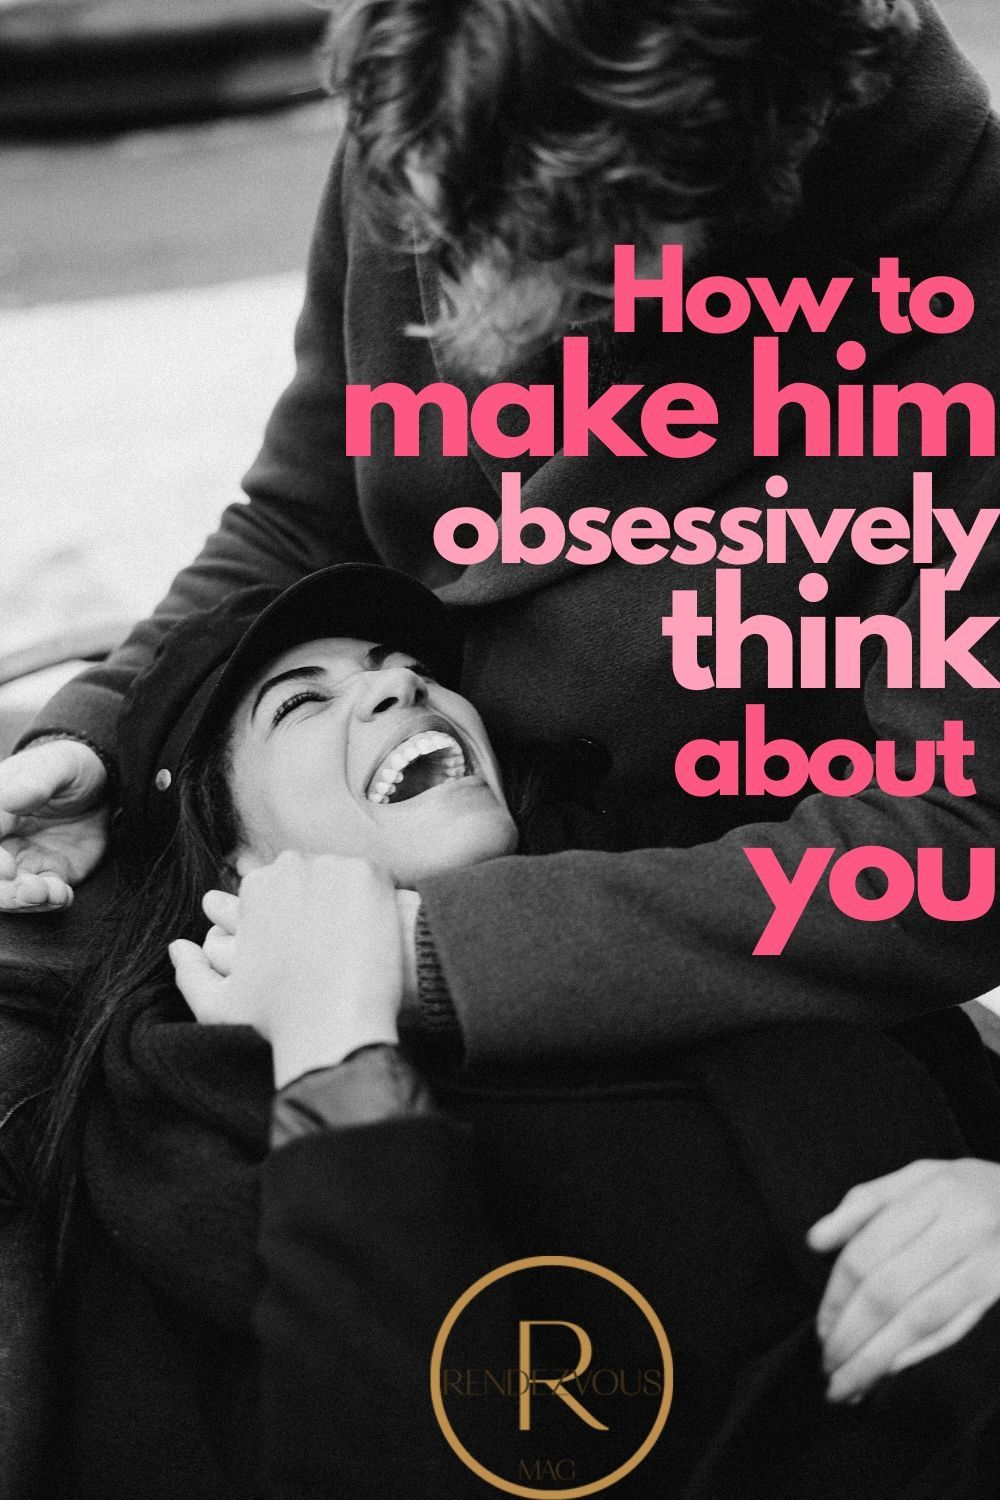 How to make him miss you have him crave you in 7 steps